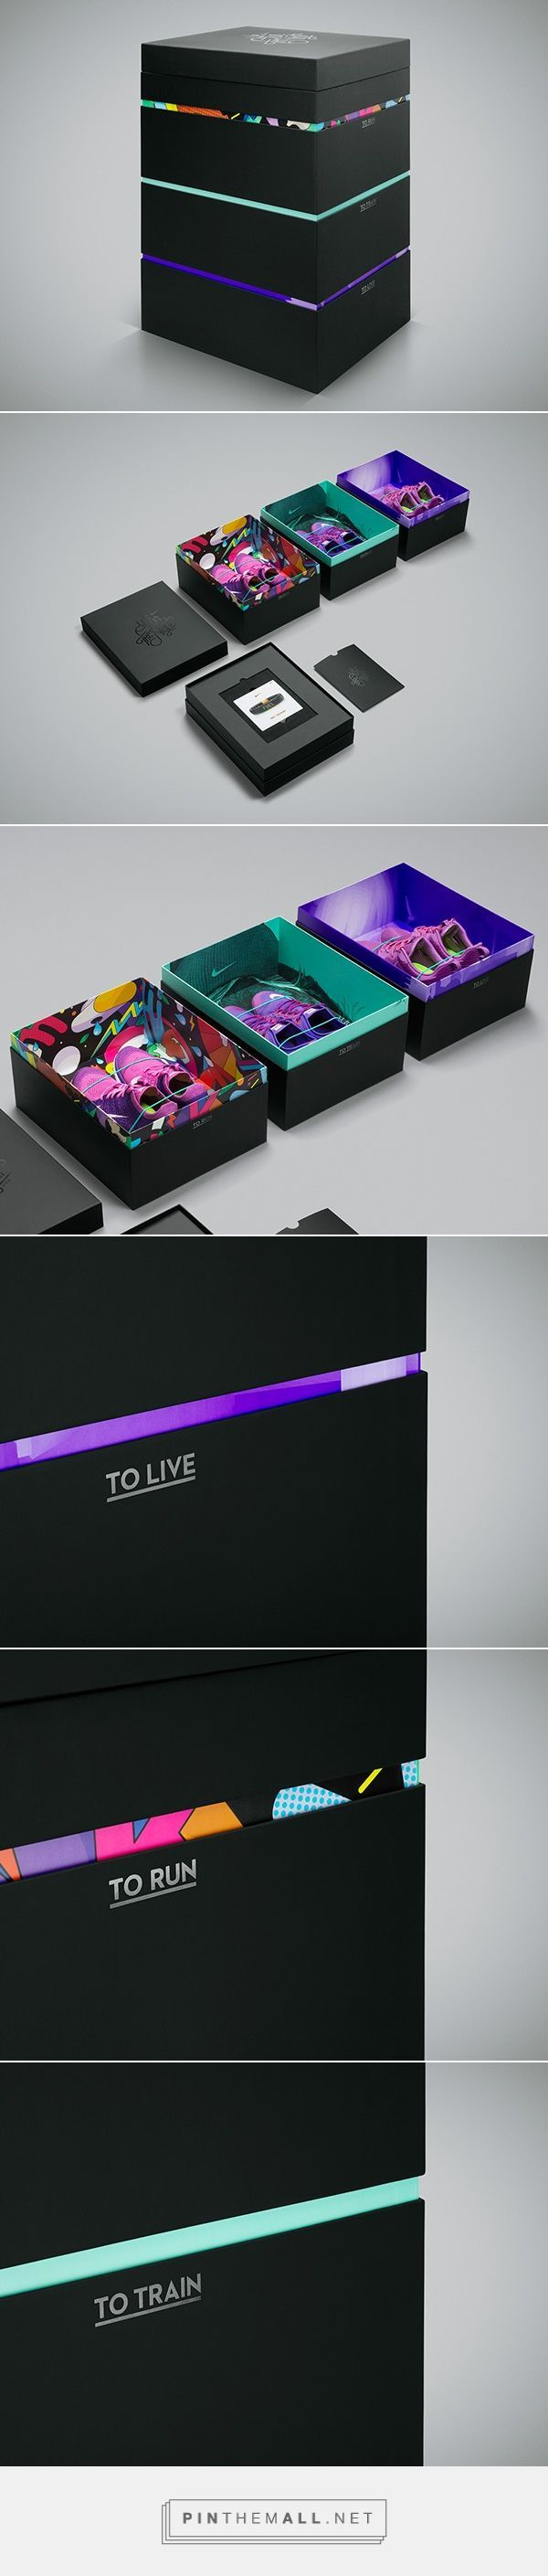 special edition shoes / shoe-boxes